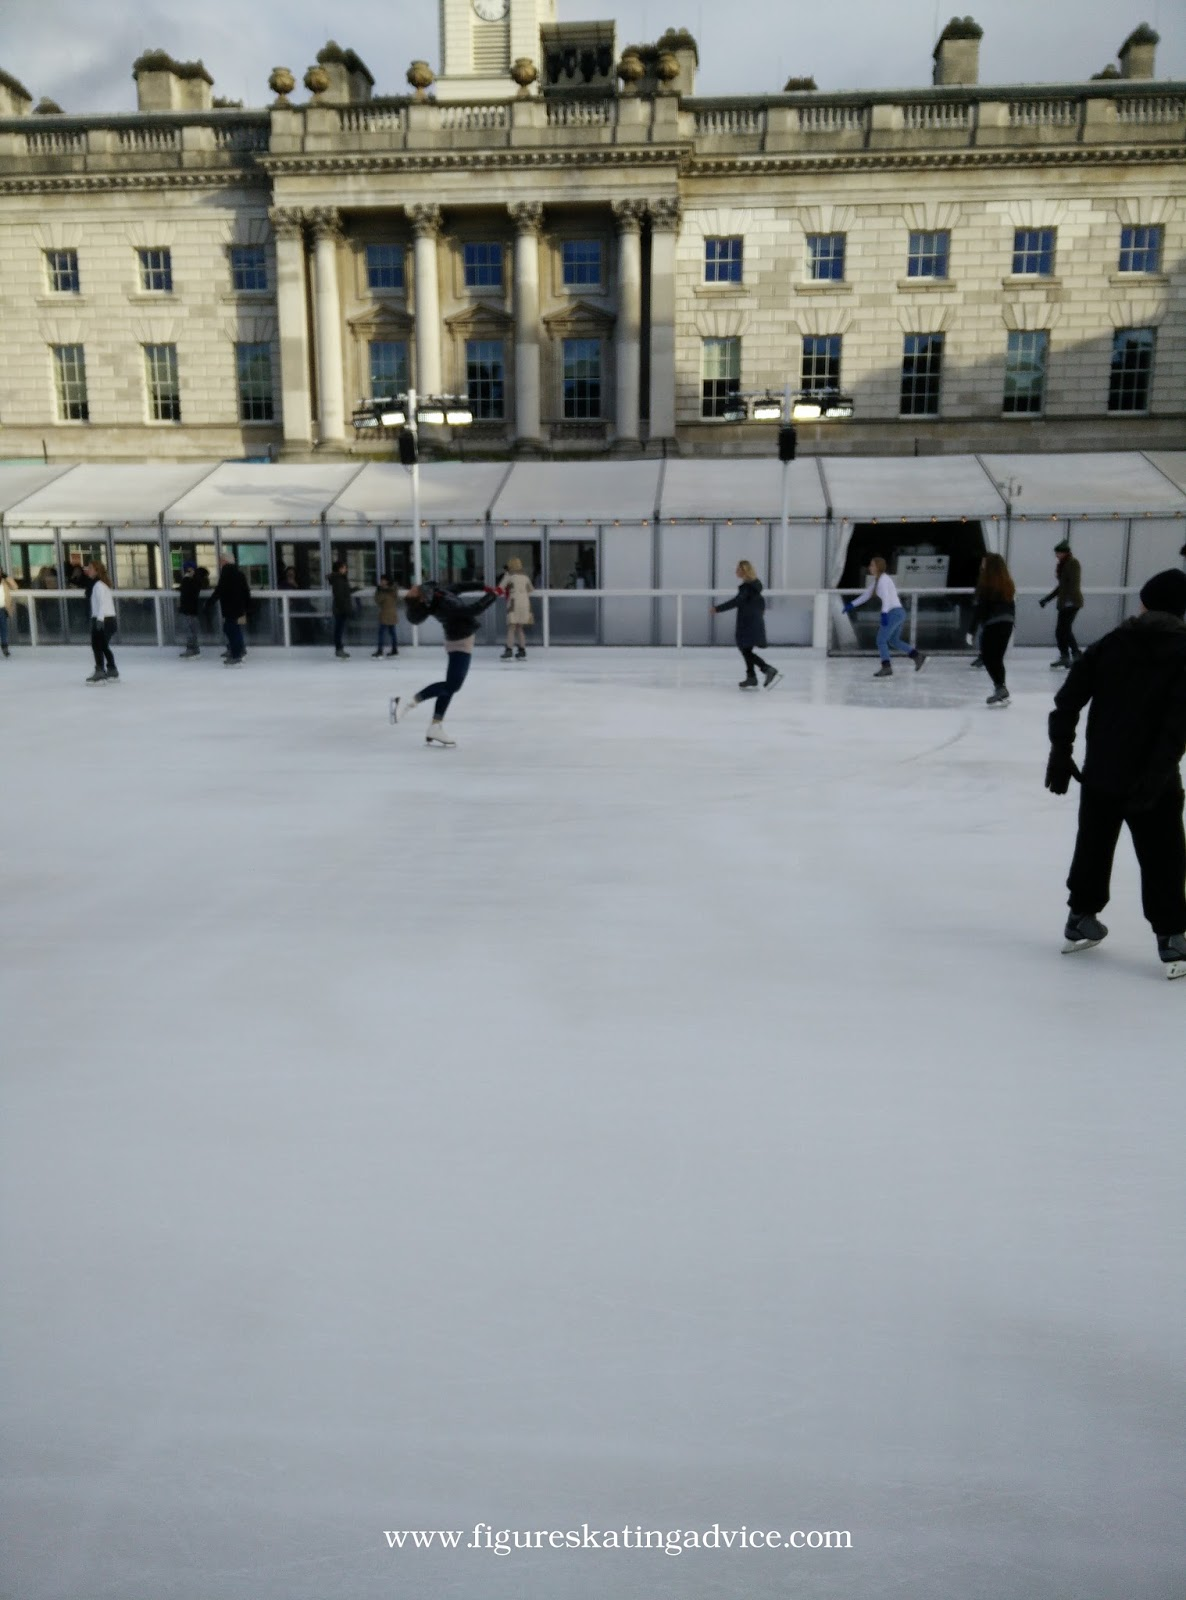 figure skating advice ice skating at somerset house ice rink